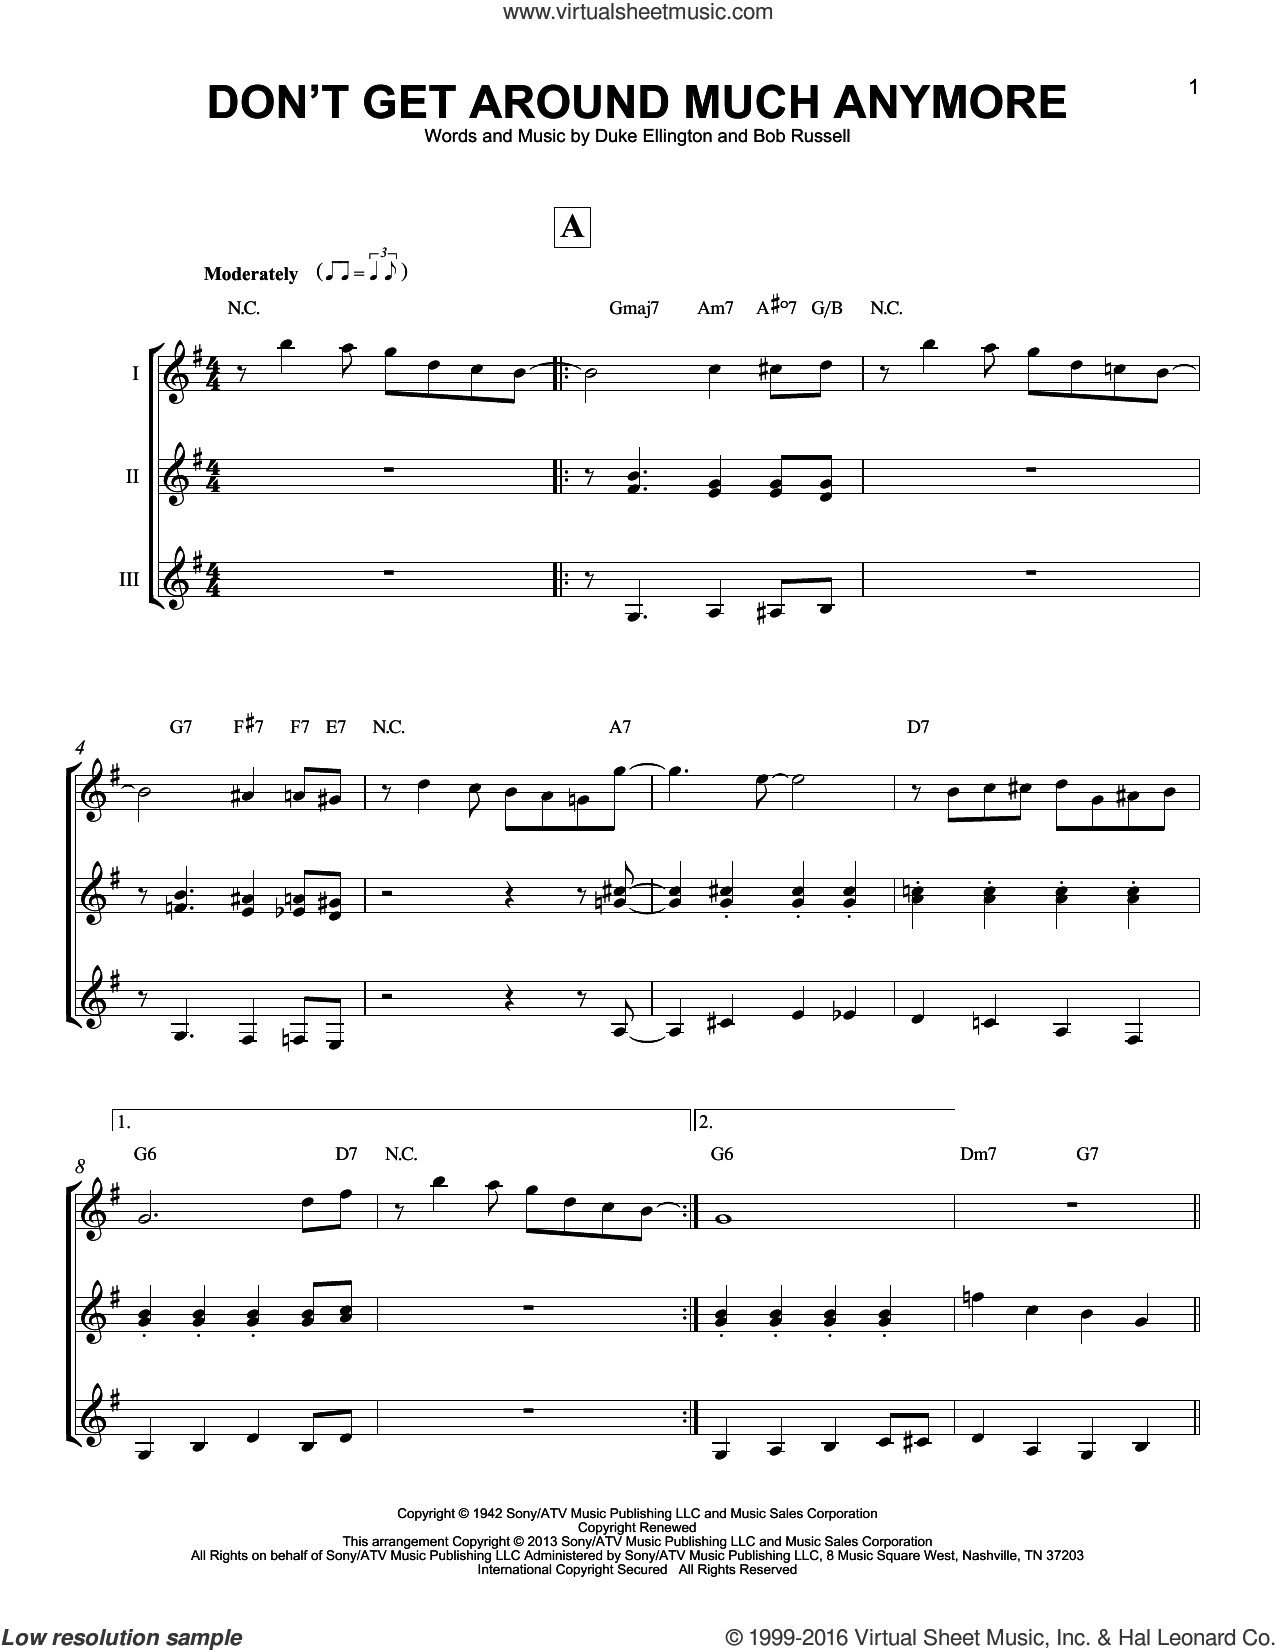 Don't Get Around Much Anymore sheet music for guitar ensemble by Duke Ellington and Bob Russell, intermediate guitar ensemble. Score Image Preview.